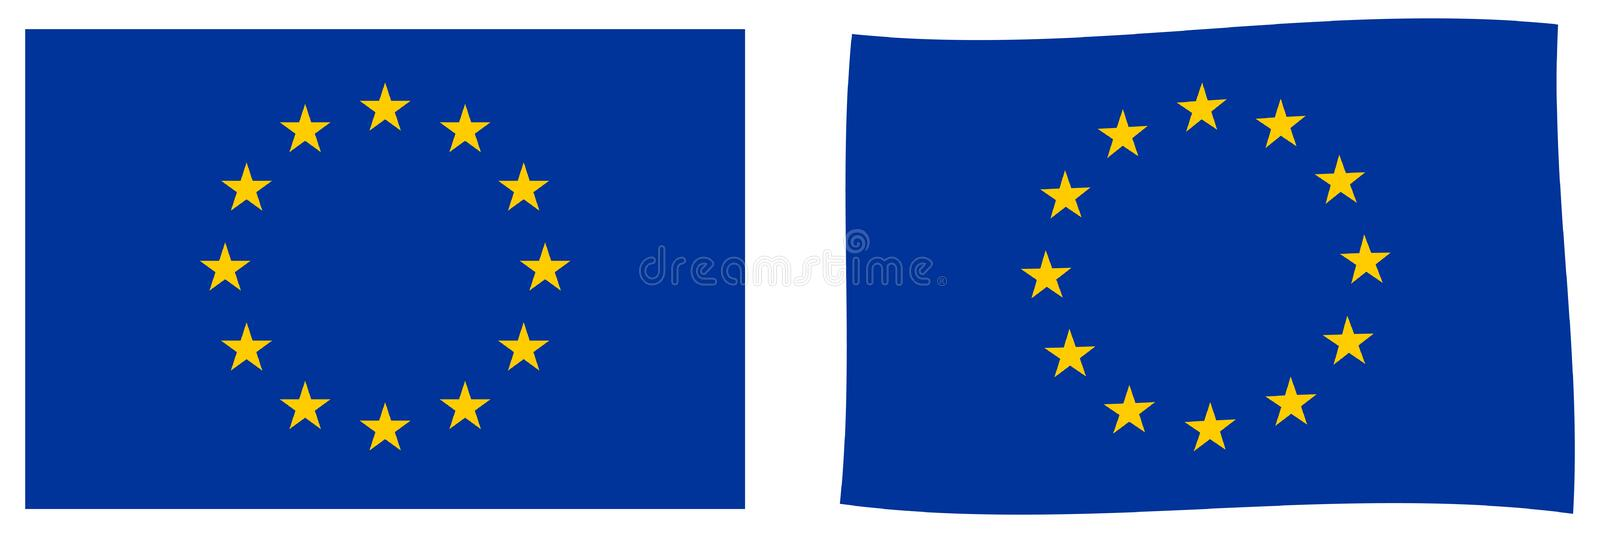 European Union EU flag. Simple and slightly waving version. royalty free illustration